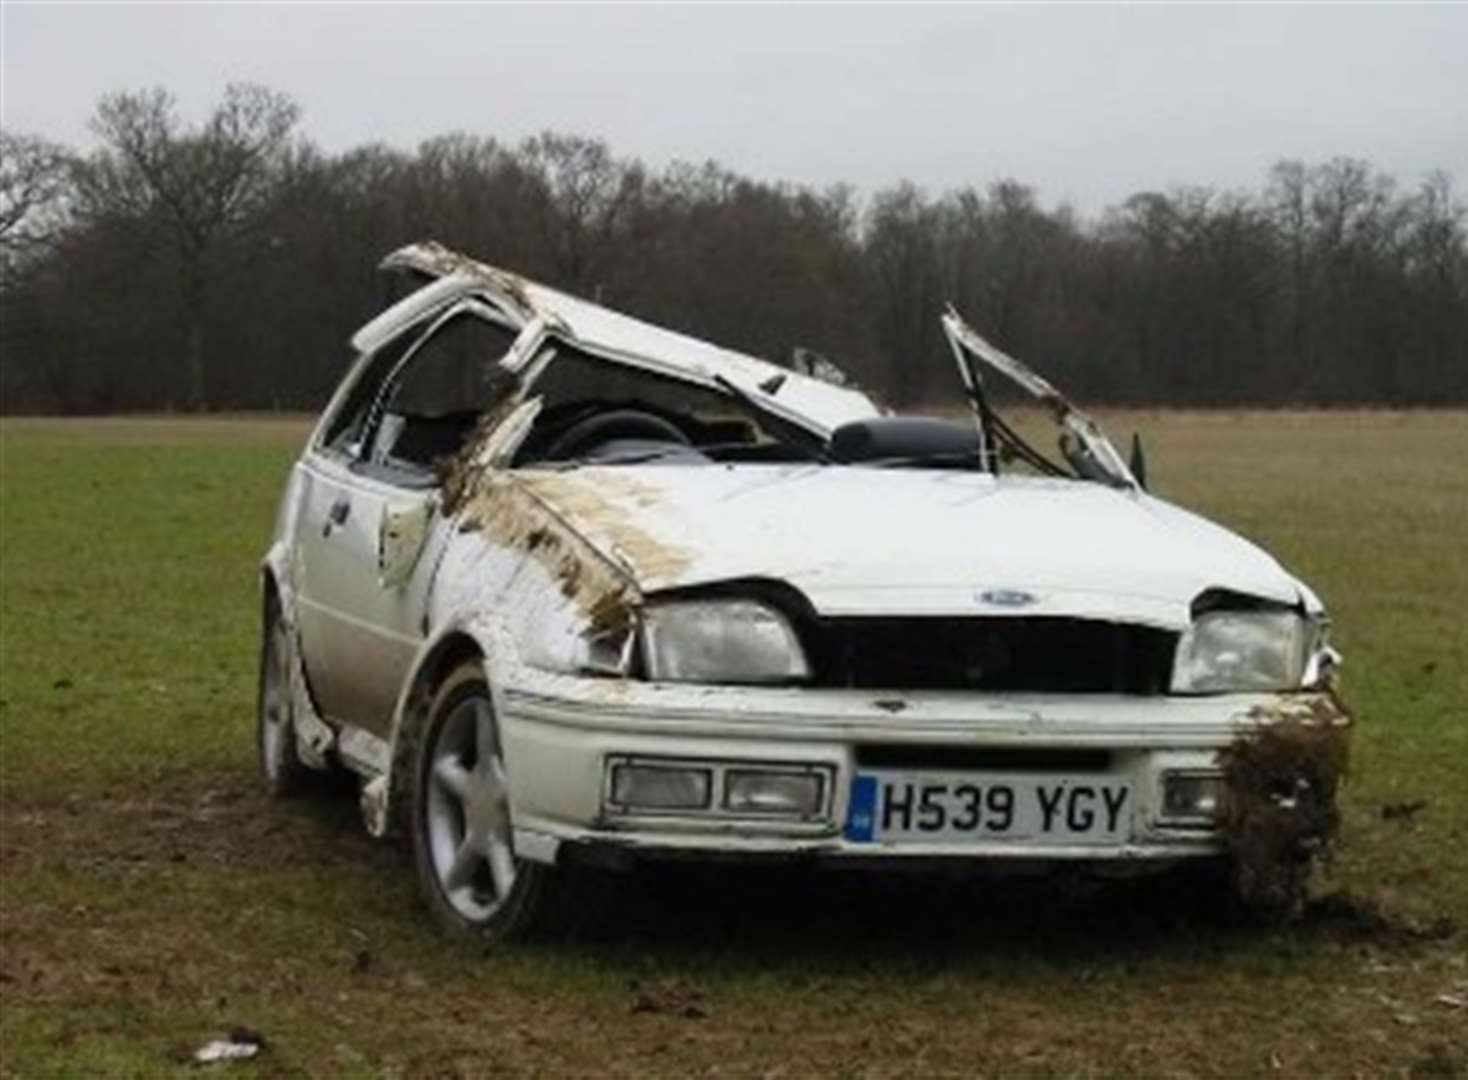 Woman hurt as car crashes into field